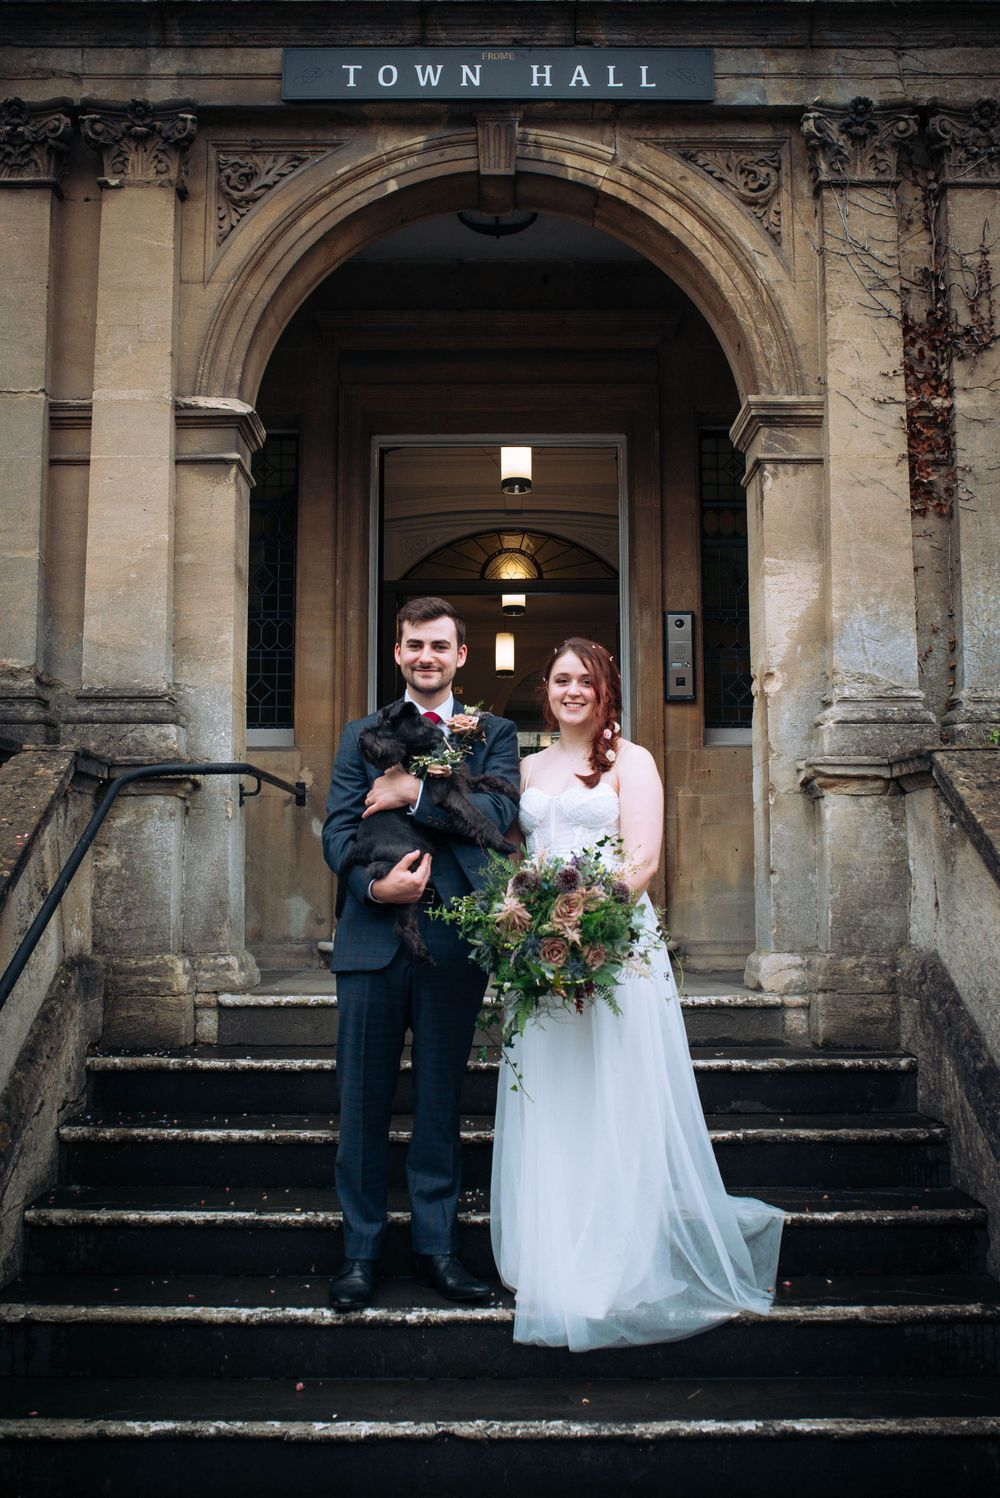 Frome Town Hall wedding by Zara Davis Photography, Gloucestershire just married outside with dog